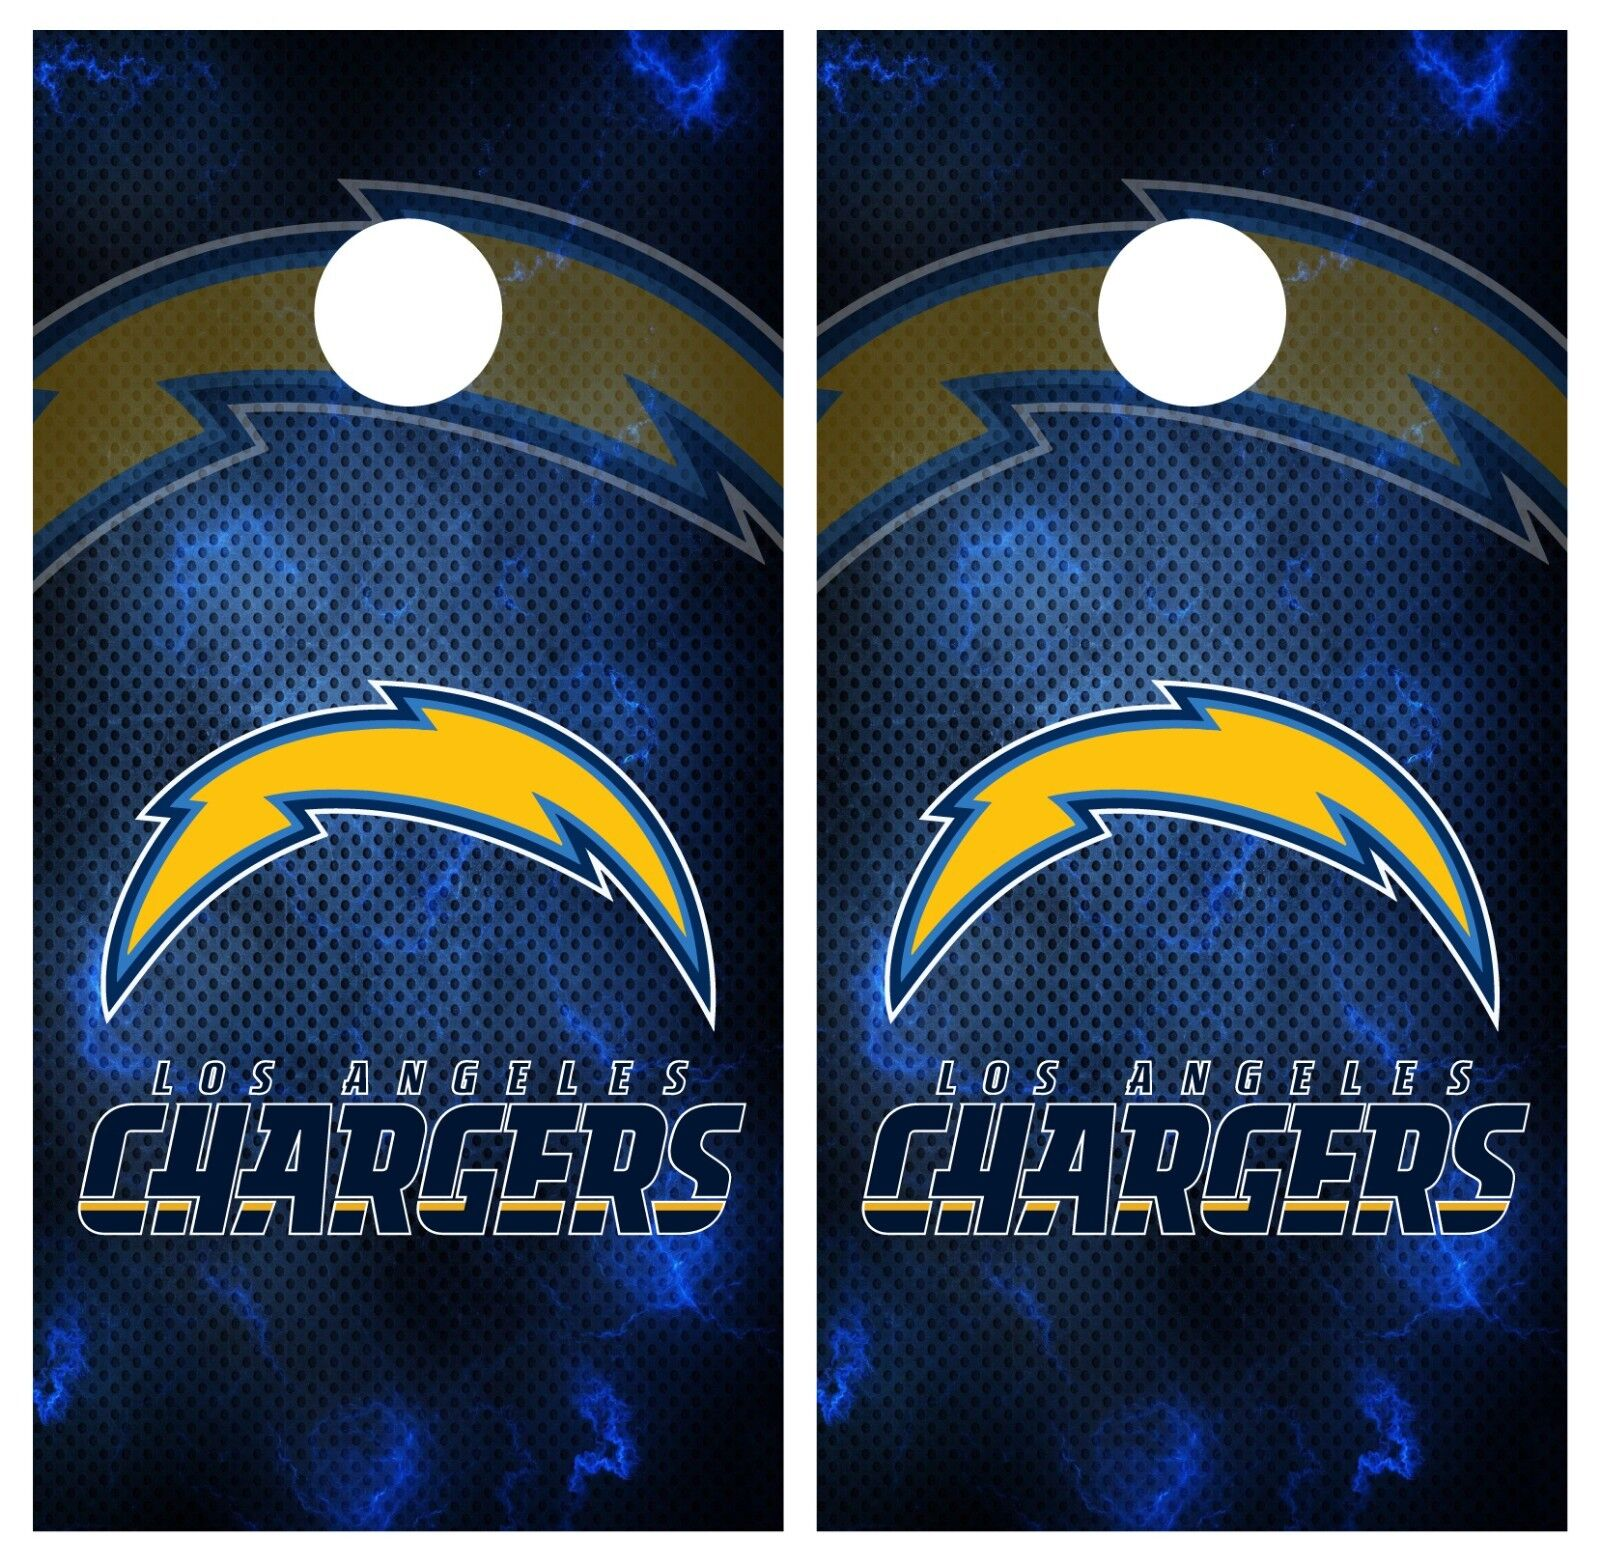 Los Angeles Chargers Cornhole Board Wrap Skins  Vinyl HIGH QUALITY 3M Laminated  buy 100% authentic quality